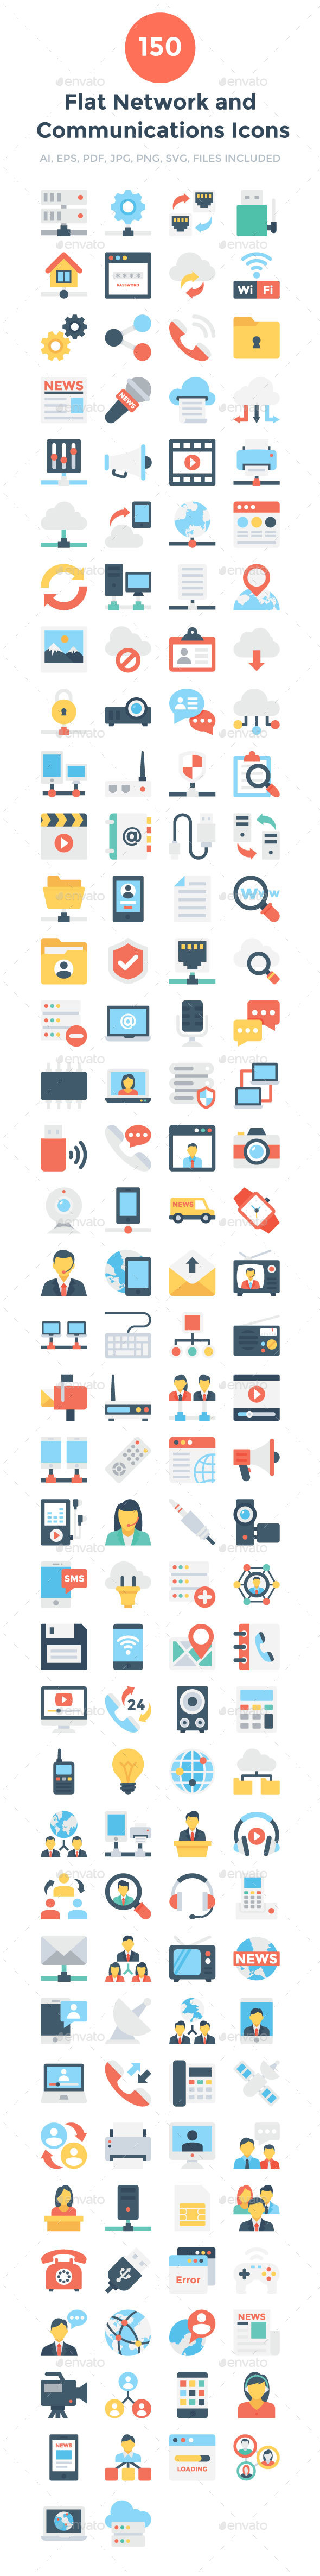 150 Network and Communication Icons - Icons